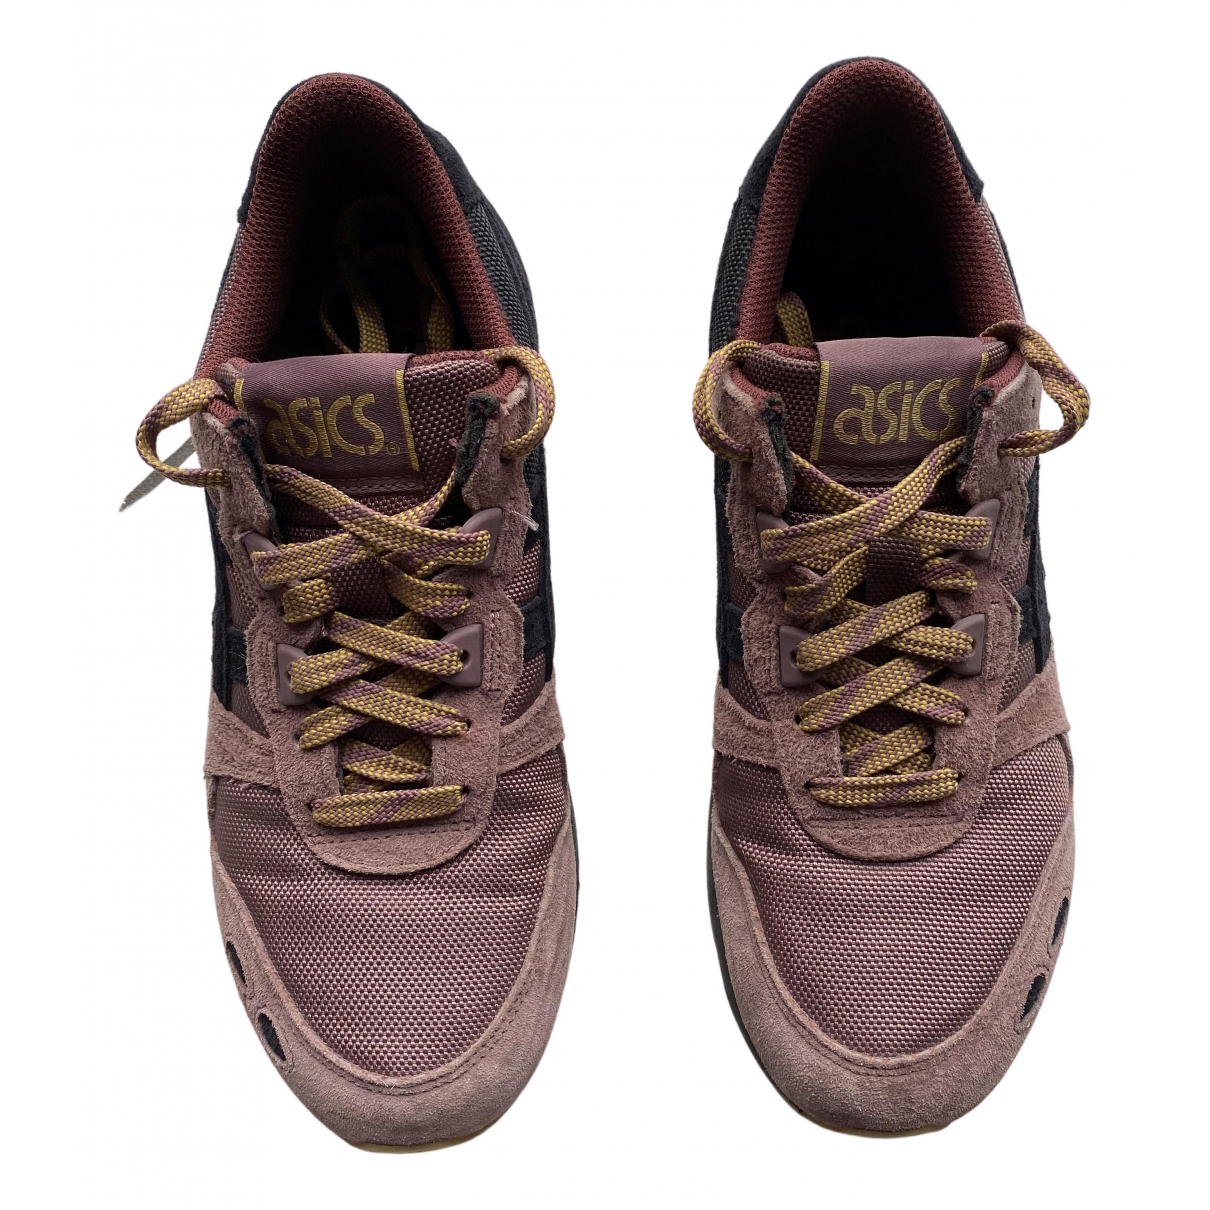 Asics N Purple Leather Trainers for Women 39.5 EU